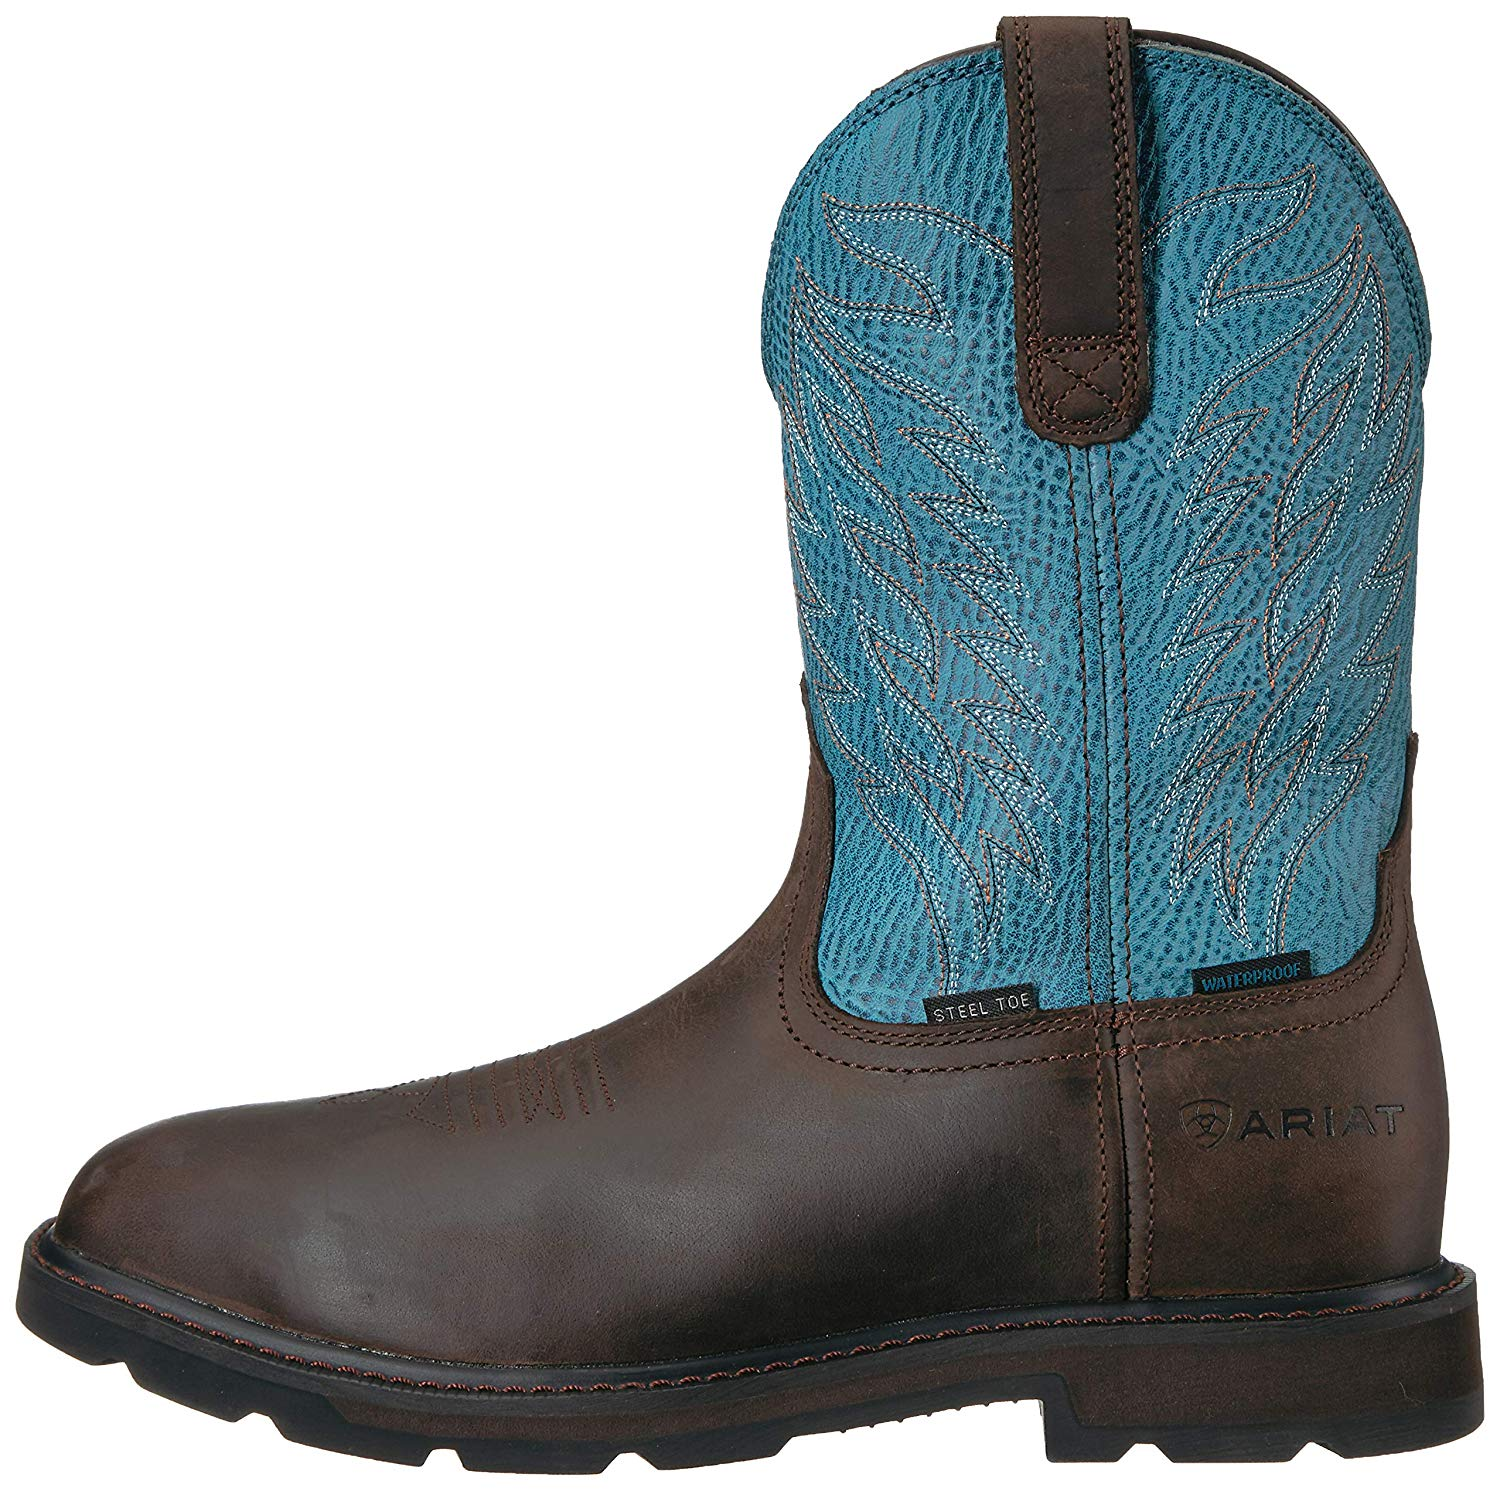 9bff4882a82 Details about Ariat Men's Groundbreaker Wide Square H2O Steel Toe, Dark  Brown/Blue, Size 14.0